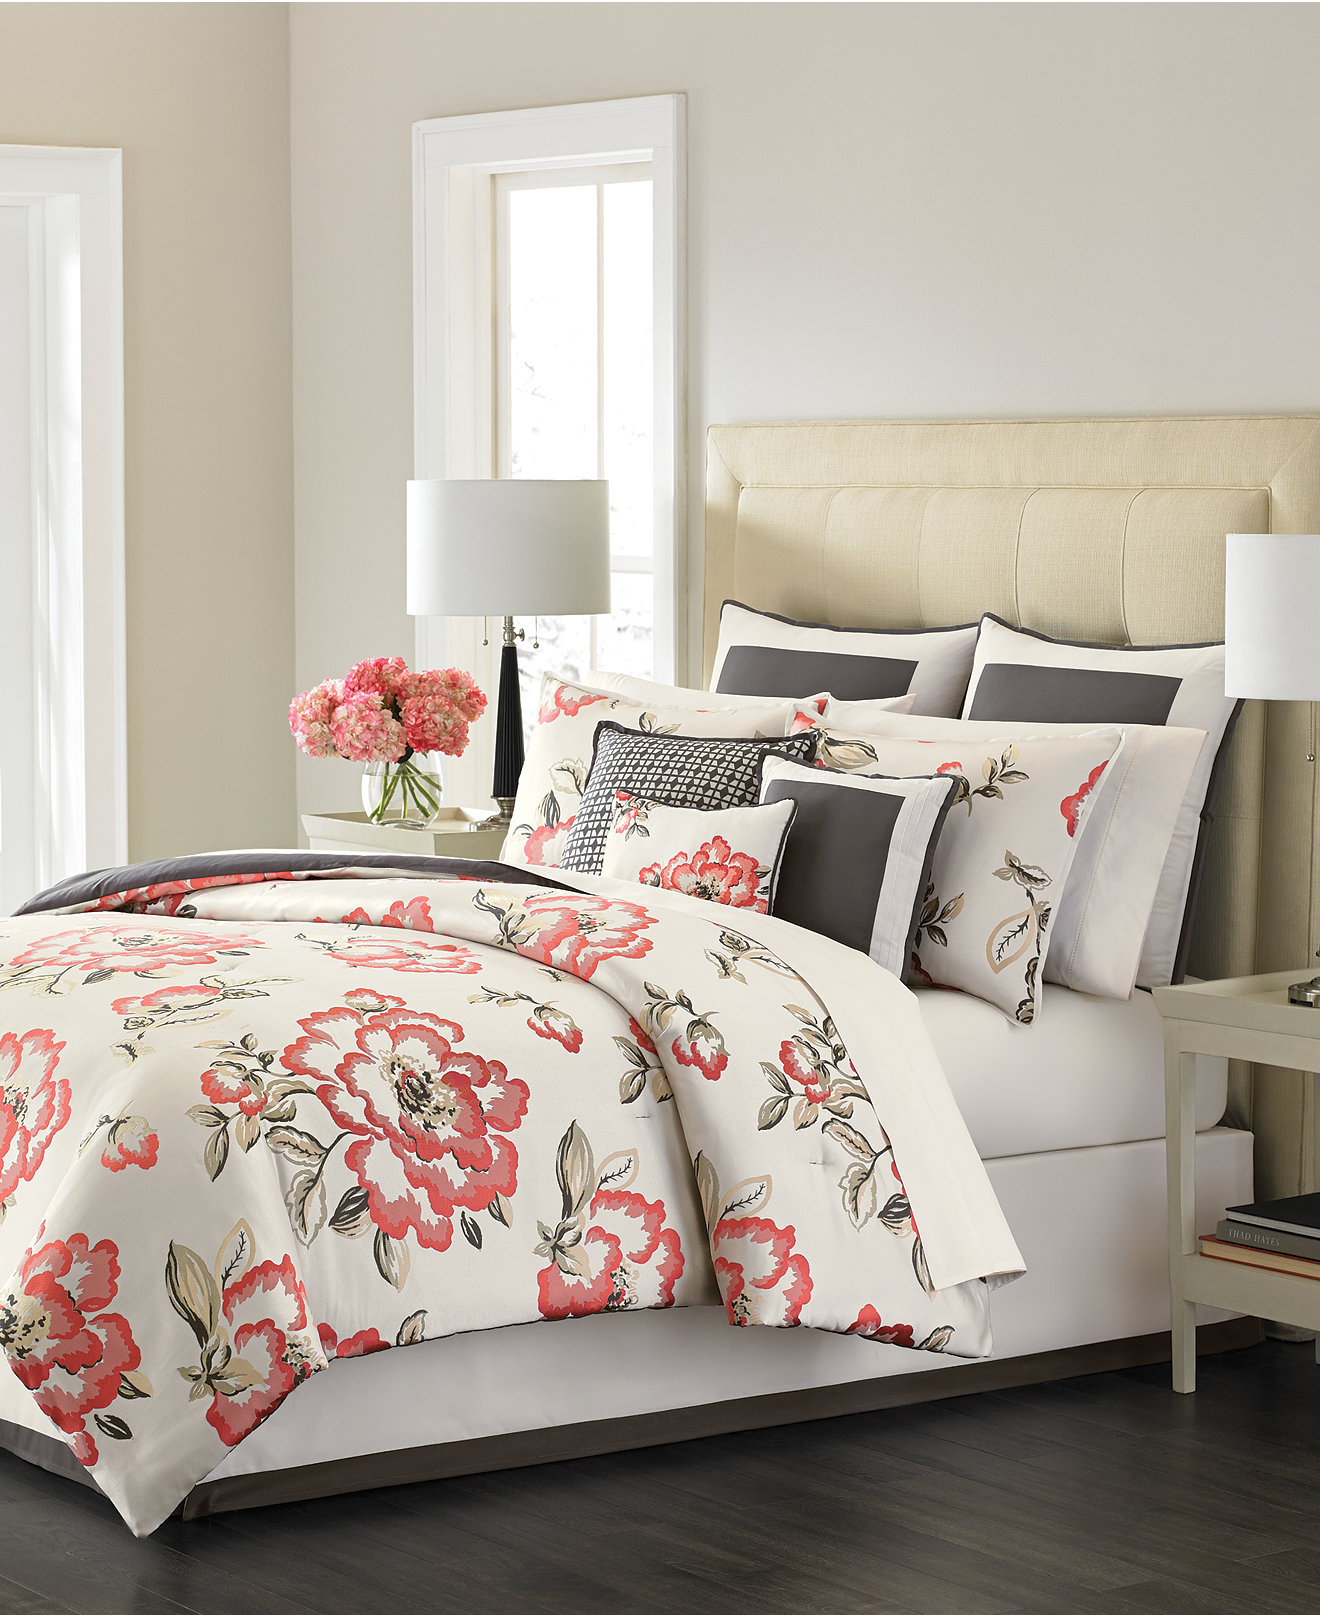 Bedding sets for women - Martha Stewart Collection Peony Blossom 9 Piece Bedding Sets Only At Macy S